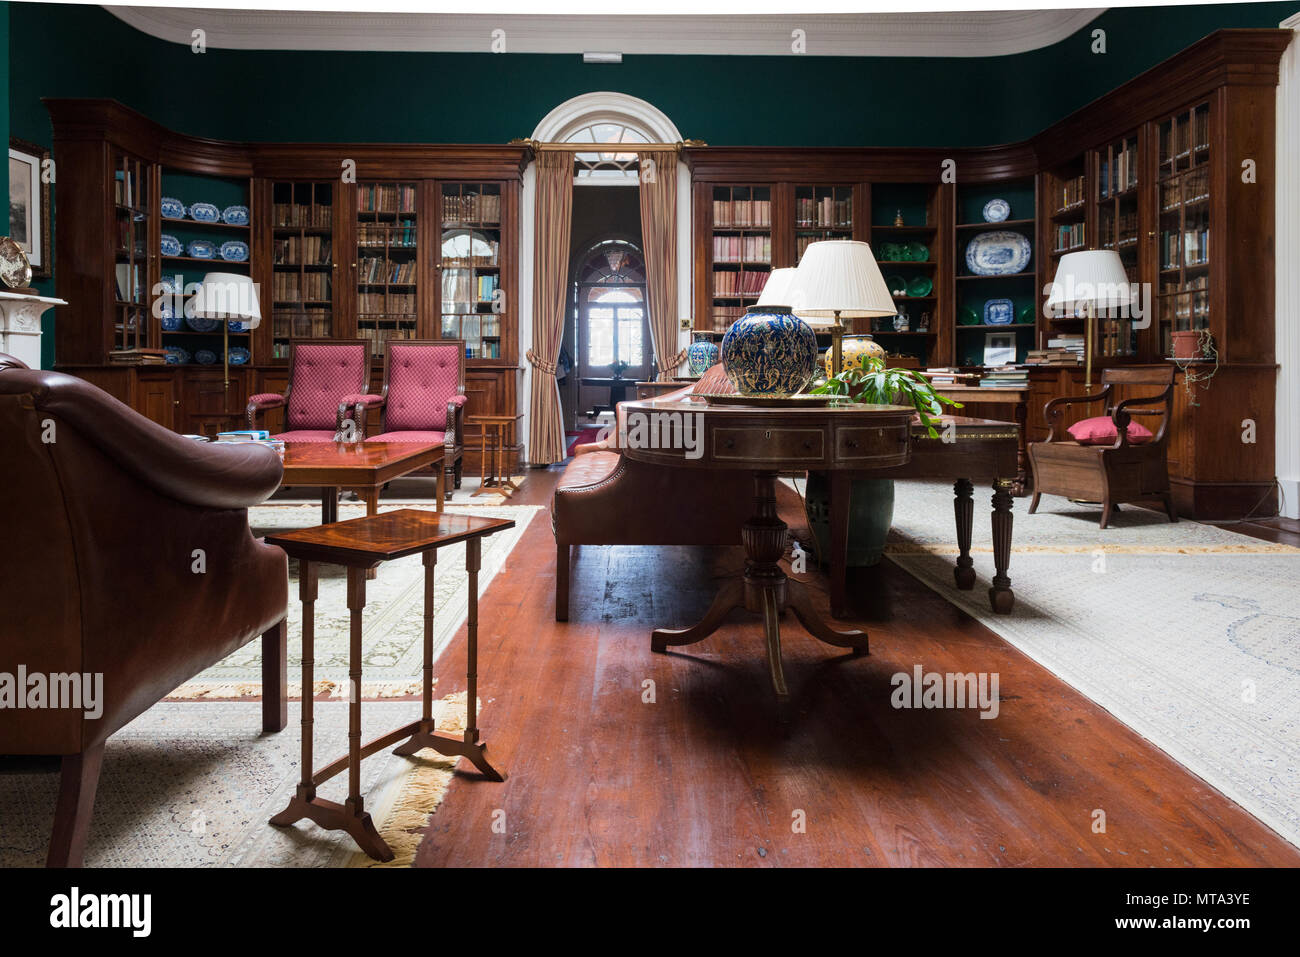 Beautiful library in Plantation House, the British Governor's Residence. It was built in 1792 by the East India Company.. St Helana - Stock Image